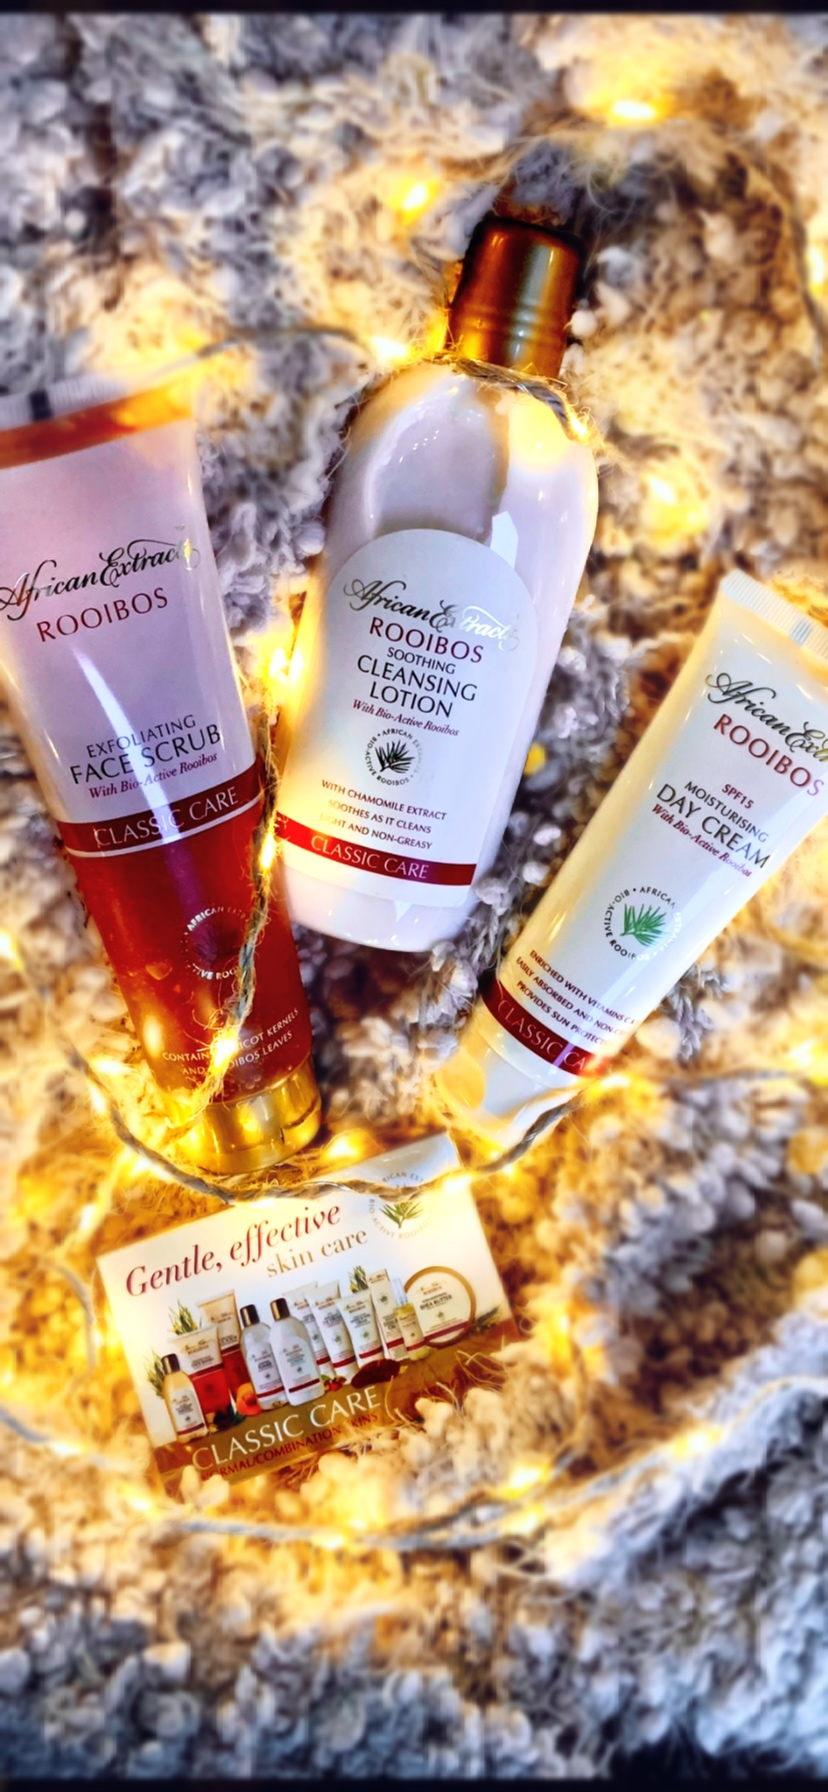 African Extracts Rooibos Classic Care Range review